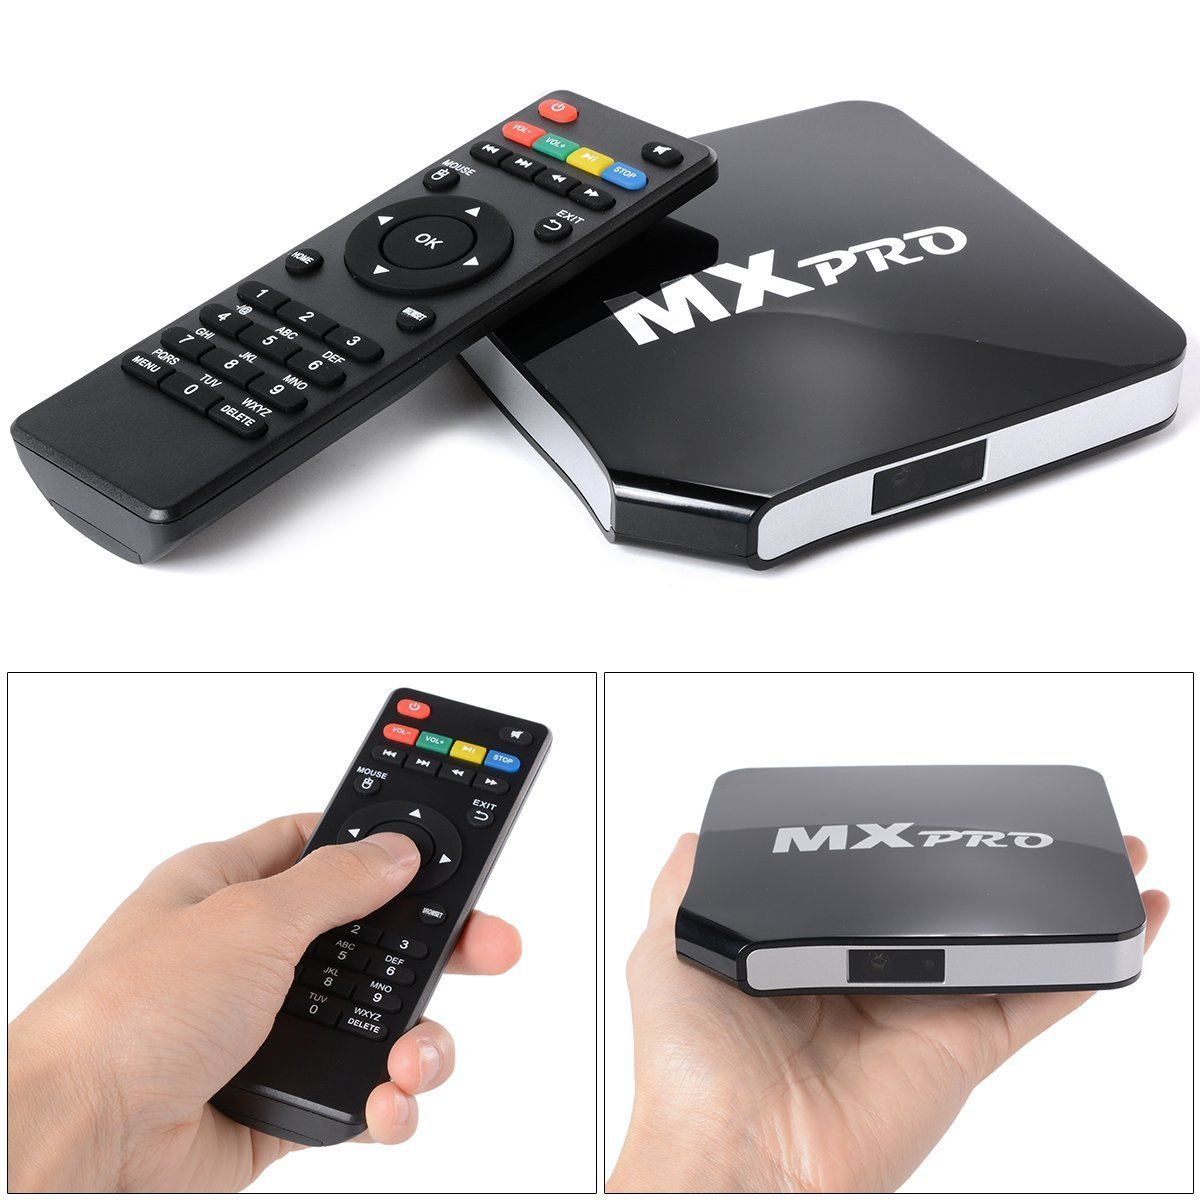 EDW MX Pro Quad Core TV Box Android 4.4.2 Set To Box - Free Movies & TV with NEW FULLY LOADED KODI (XBMC) Smart Media Player HD 1080P Mali 450 Quad Core (MX Pro 1G+8G without retail package)